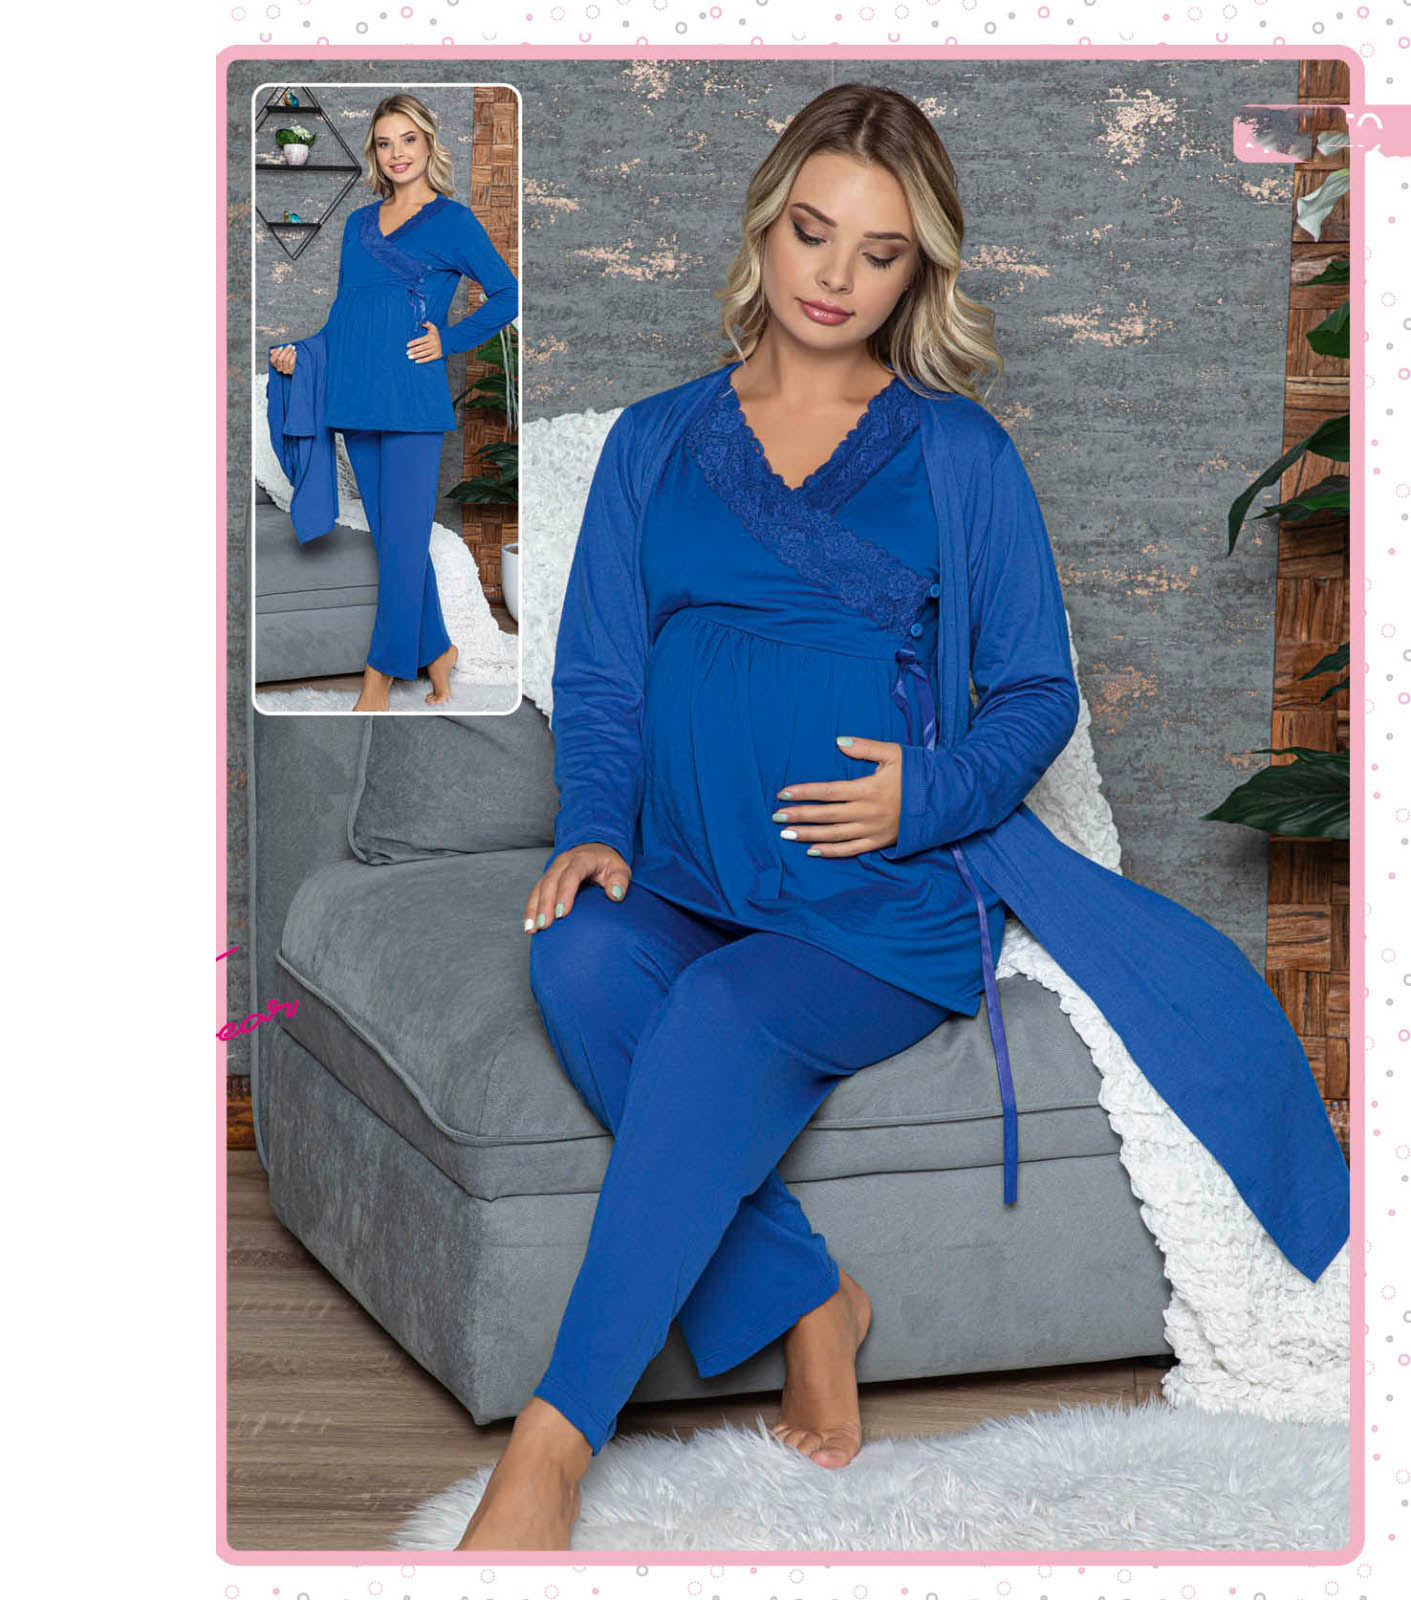 Mother Pregnancy Maternity Pajamas Set Lacy Cotton Wear at Home Comfortable Bed until Birth Soft 3 Pieces M L XL enlarge